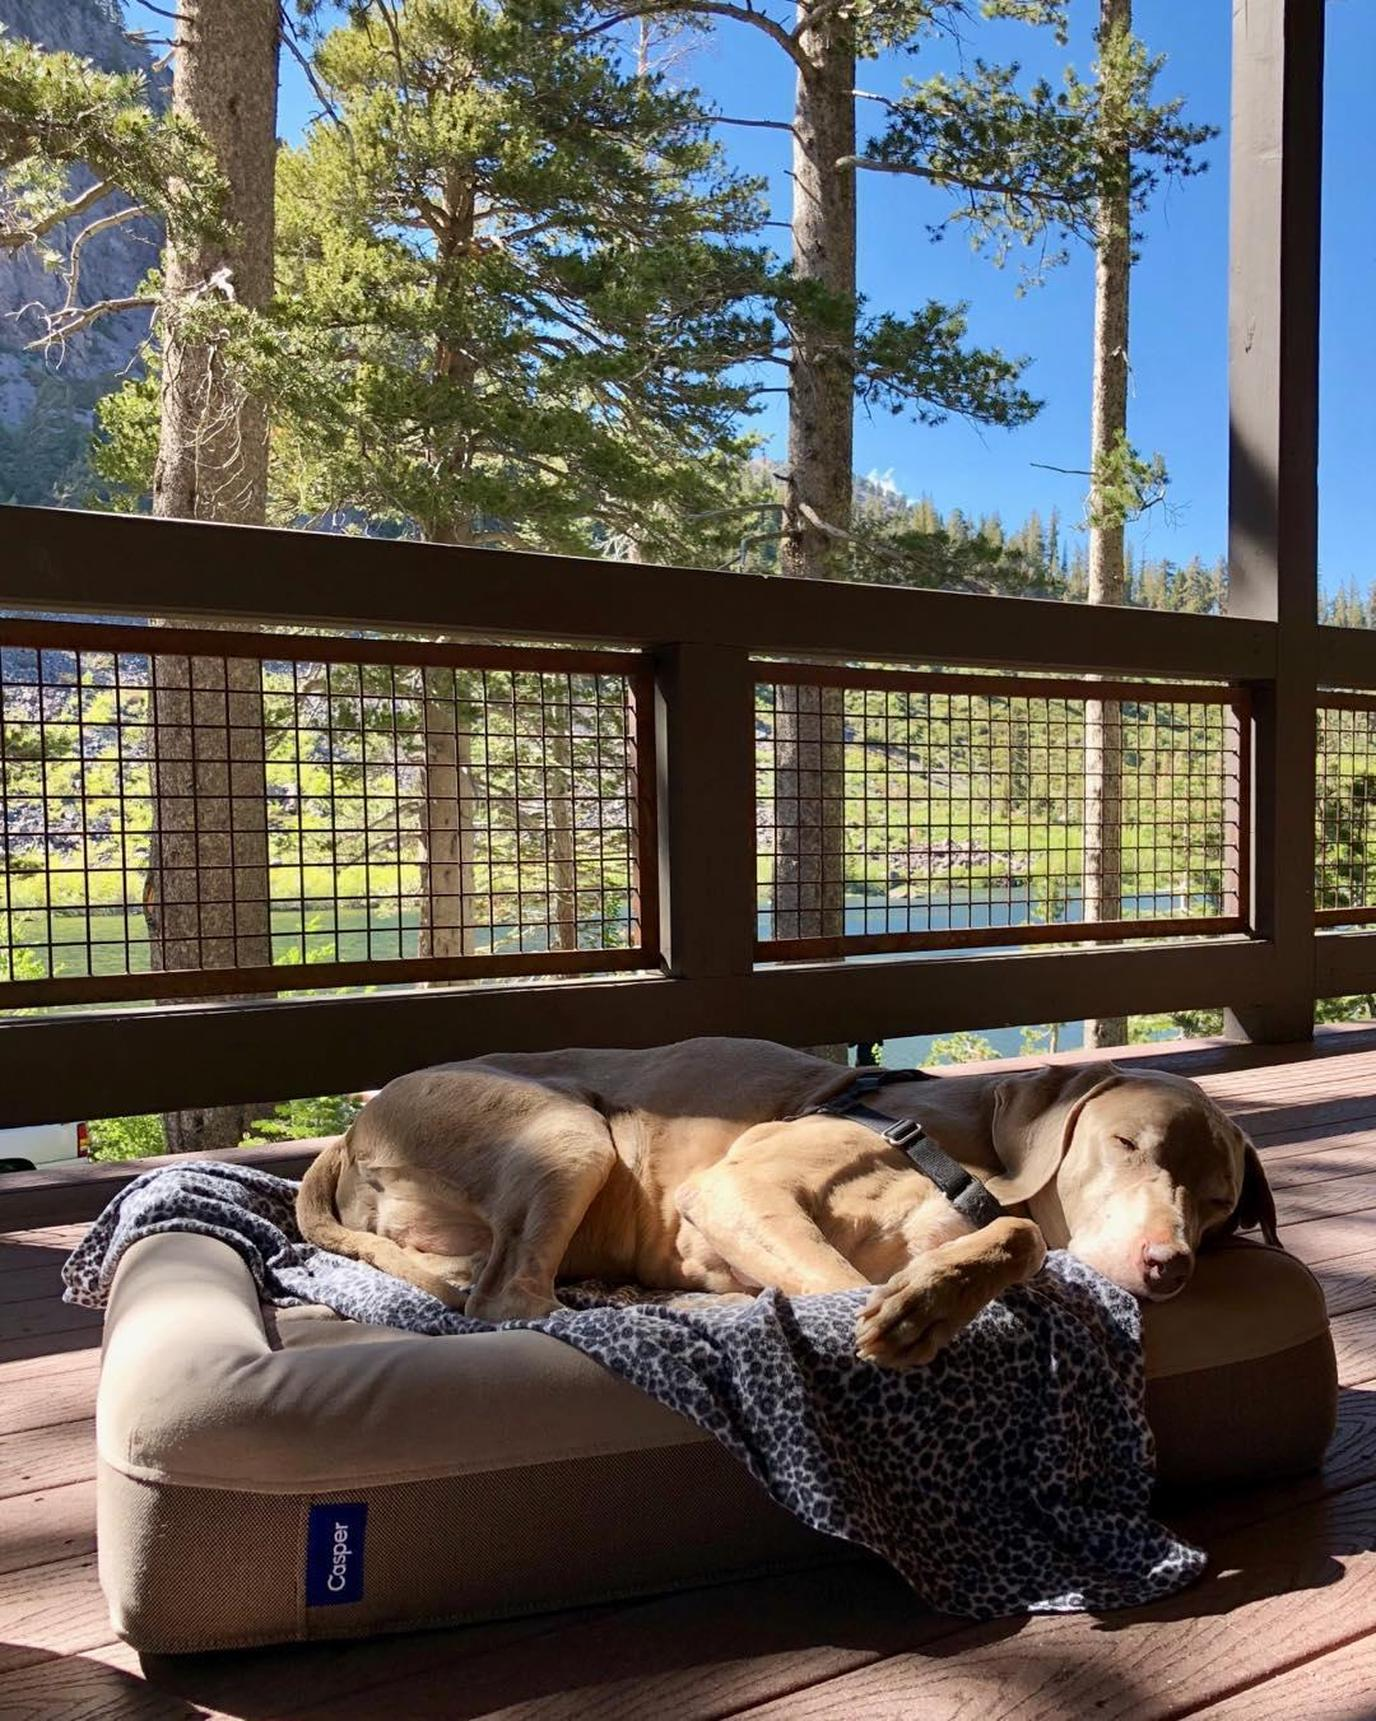 Twin Lakes at Mammoth Lakes CA is a dog-friendly destination